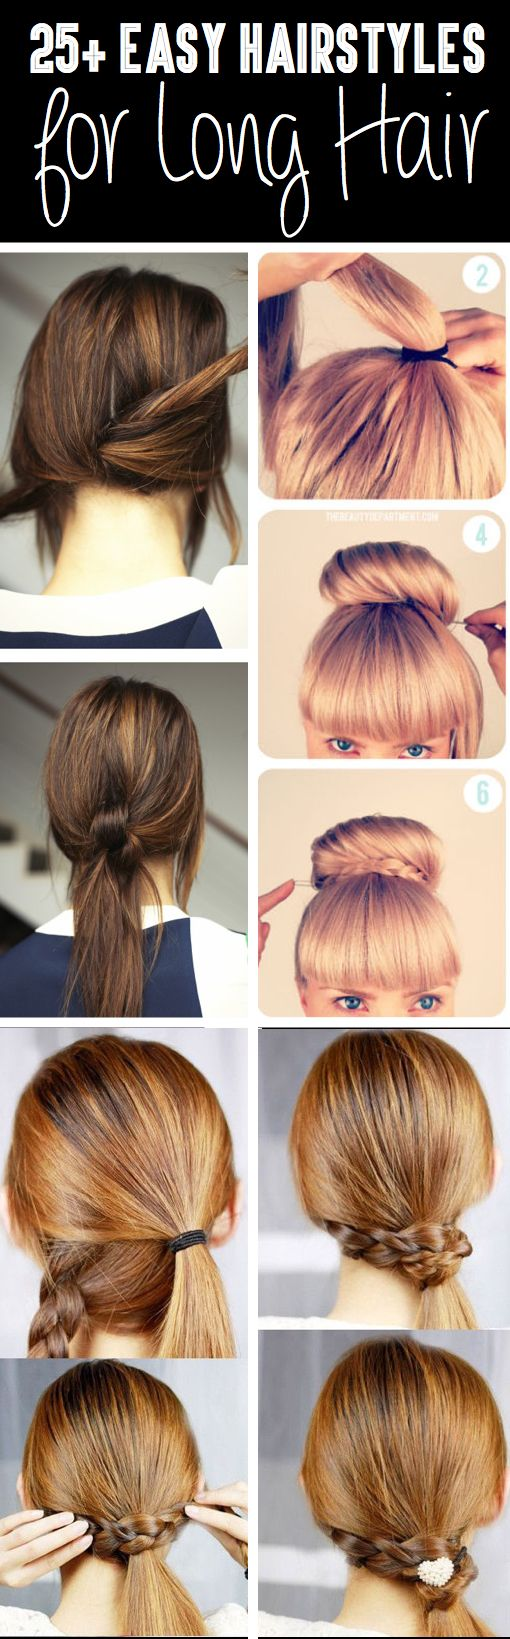 From-Classy-Hairstyles